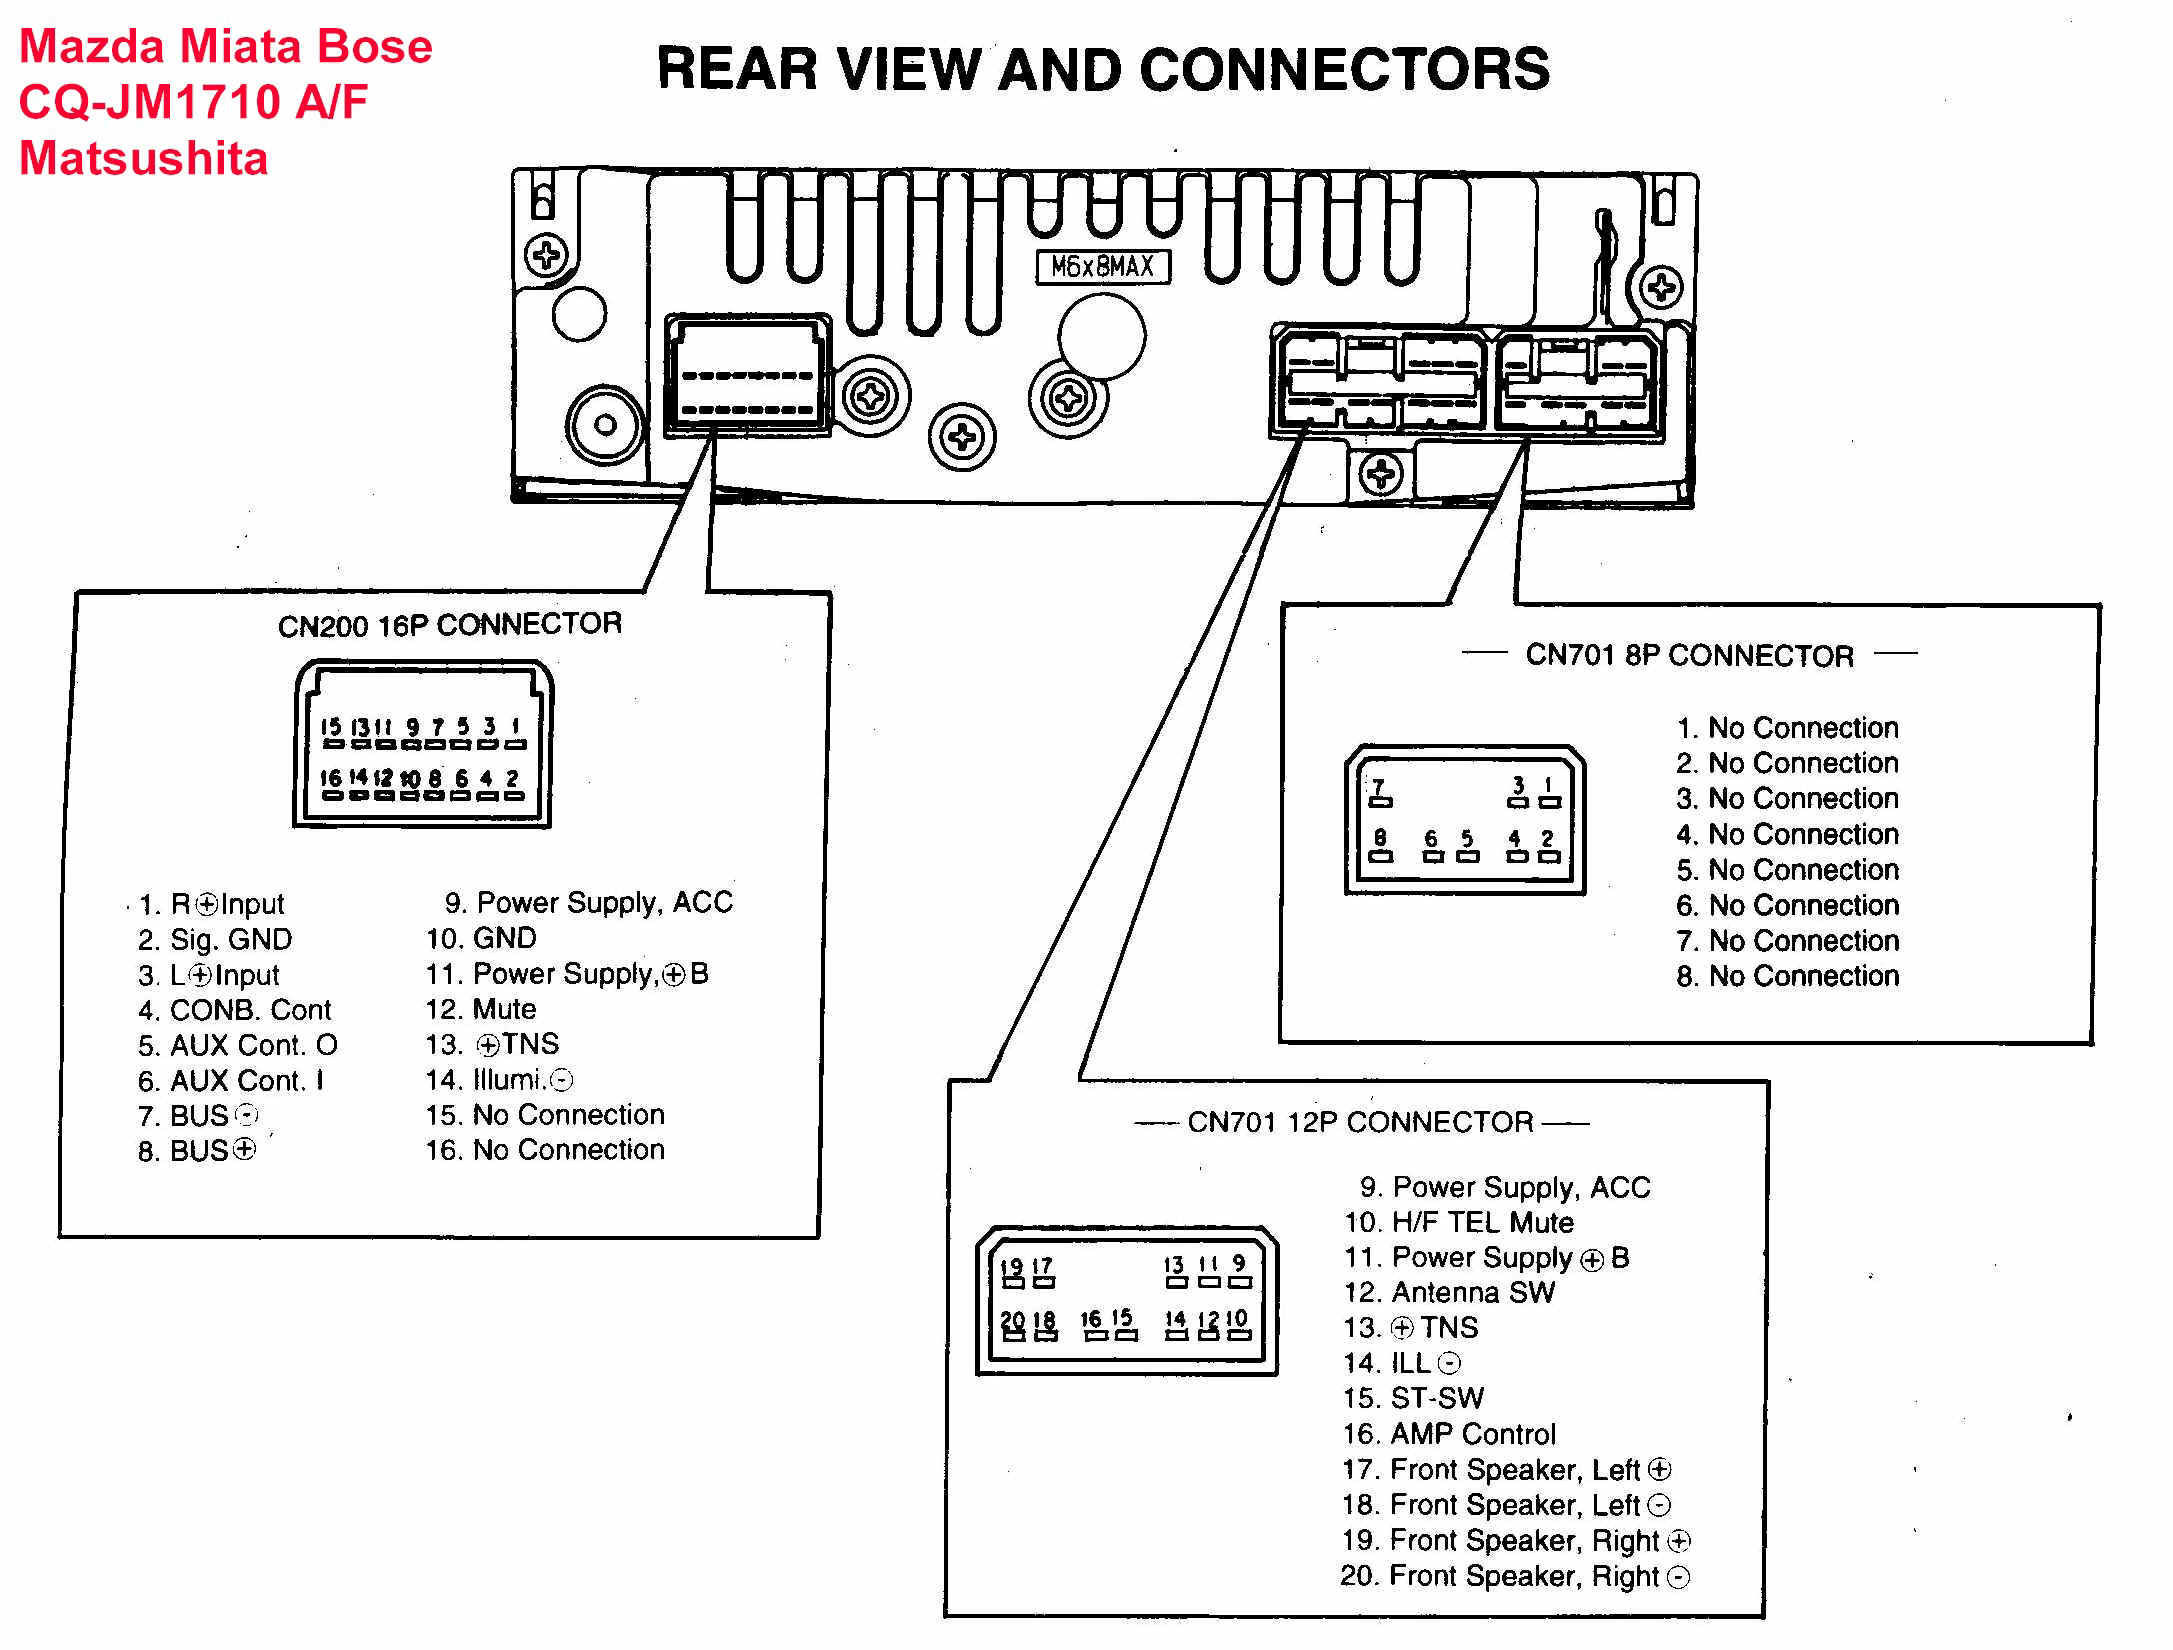 car stereo color wiring diagram car wiring diagrams wireharnessmazda022001 car stereo color wiring diagram wireharnessmazda022001